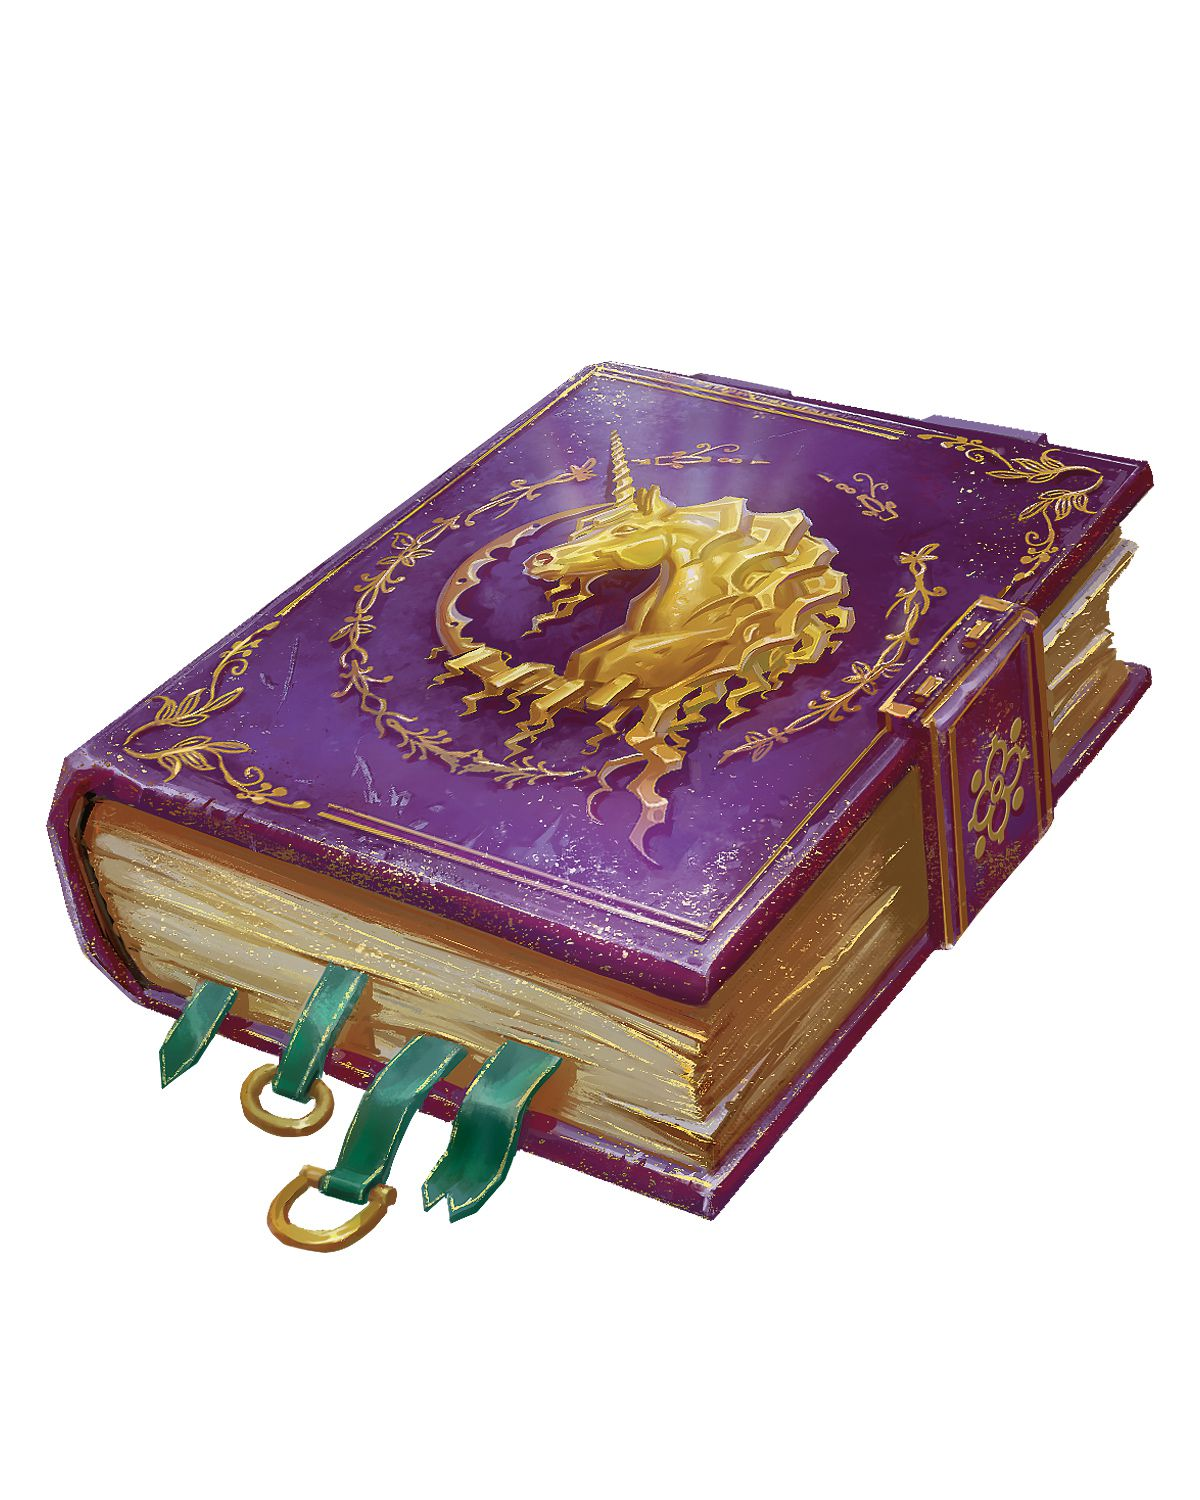 A purple book embellished with the profile of a golden unicorn.